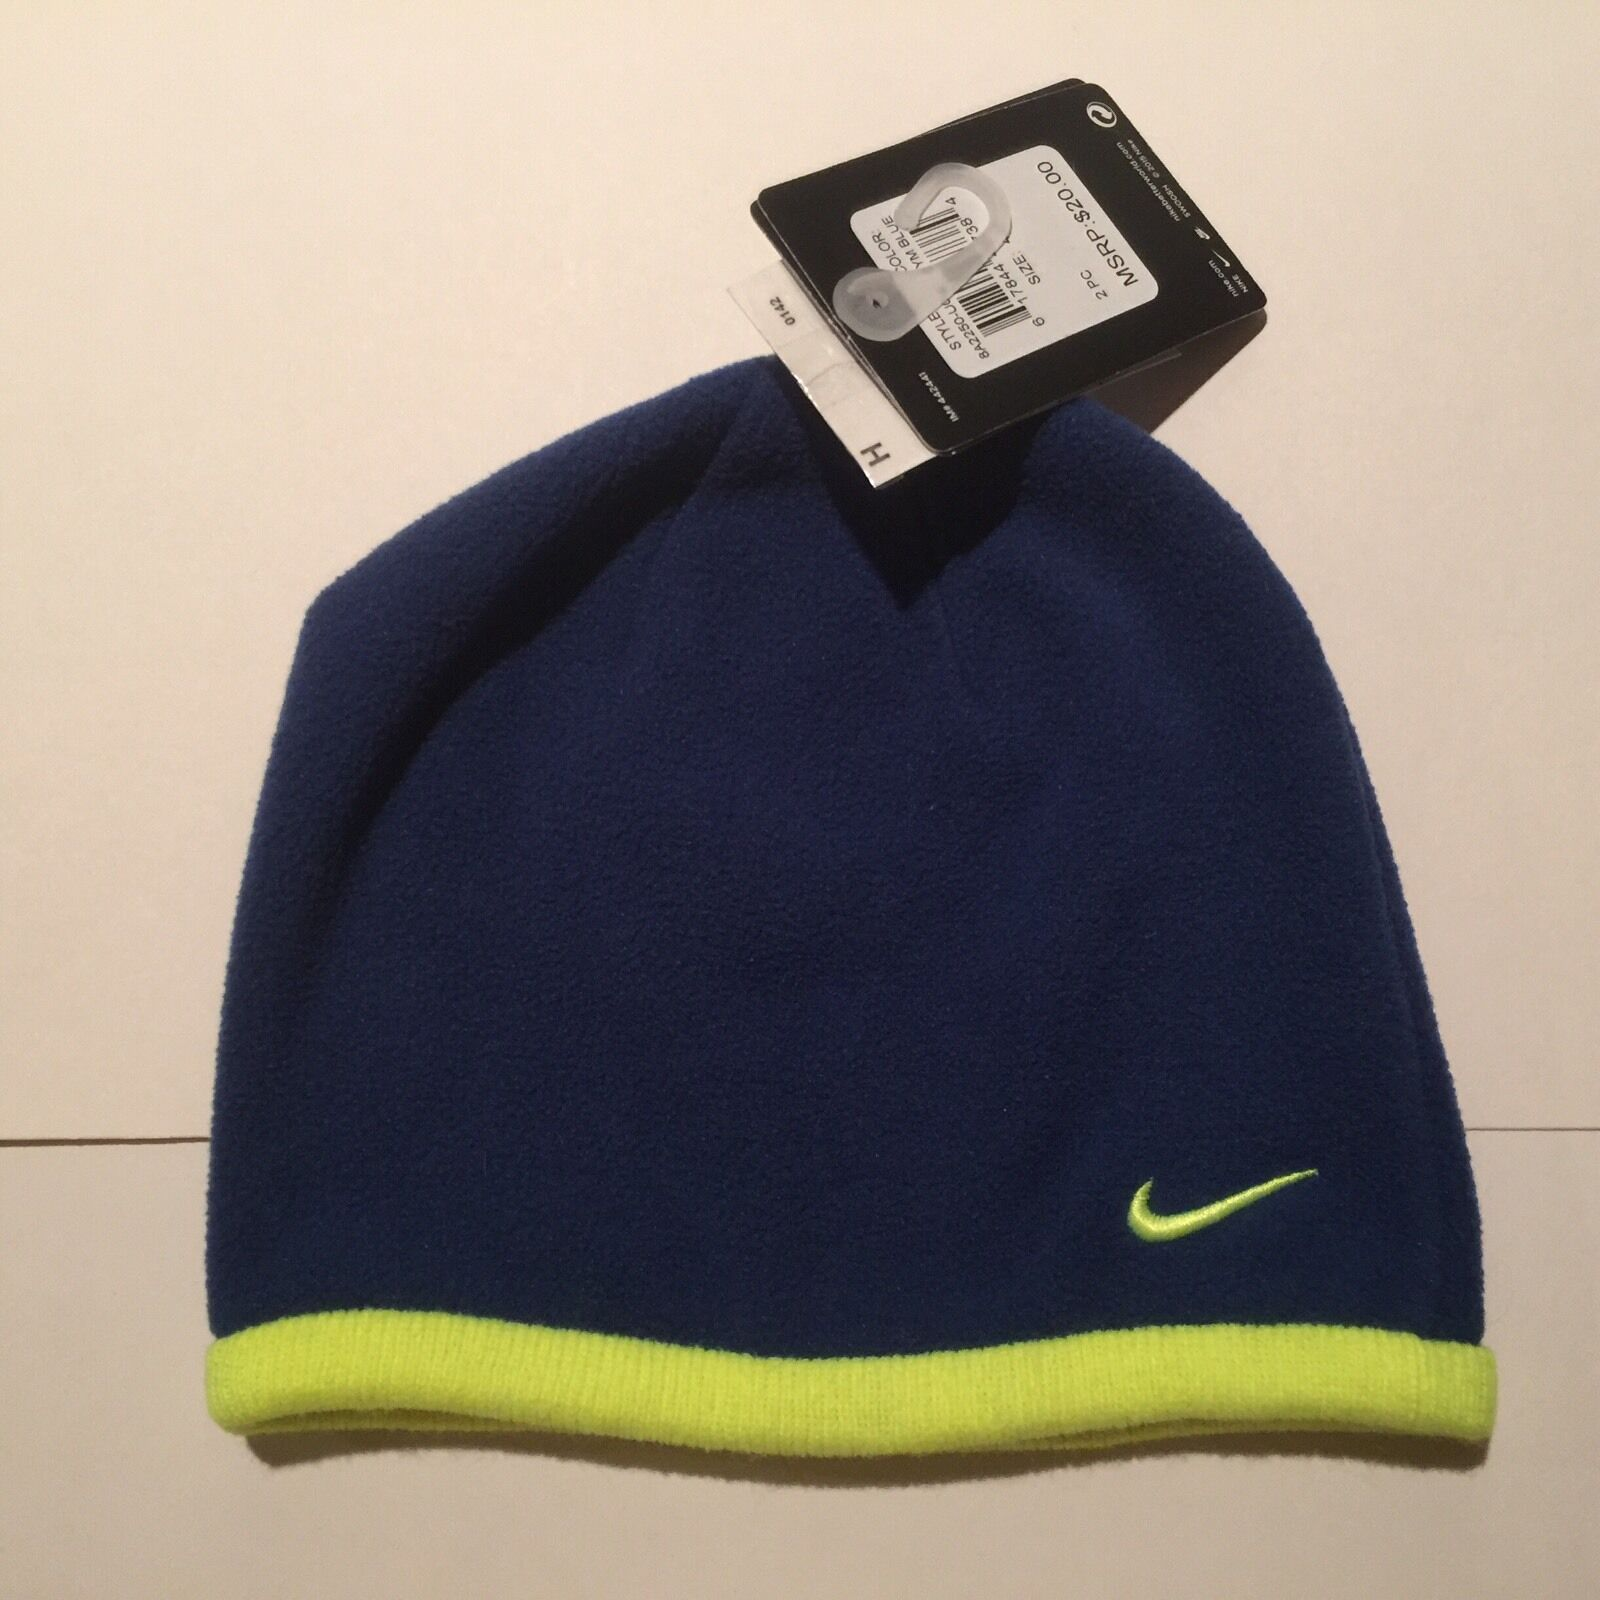 NWT Boys Nike Gyn Blue   Lime Fleece Beanie Hat Size 4-7 8A2250 1 of 2Only  1 available NWT Boys Nike Gyn Blue   Lime Fleece Beanie Hat ... 06b7c8f5679